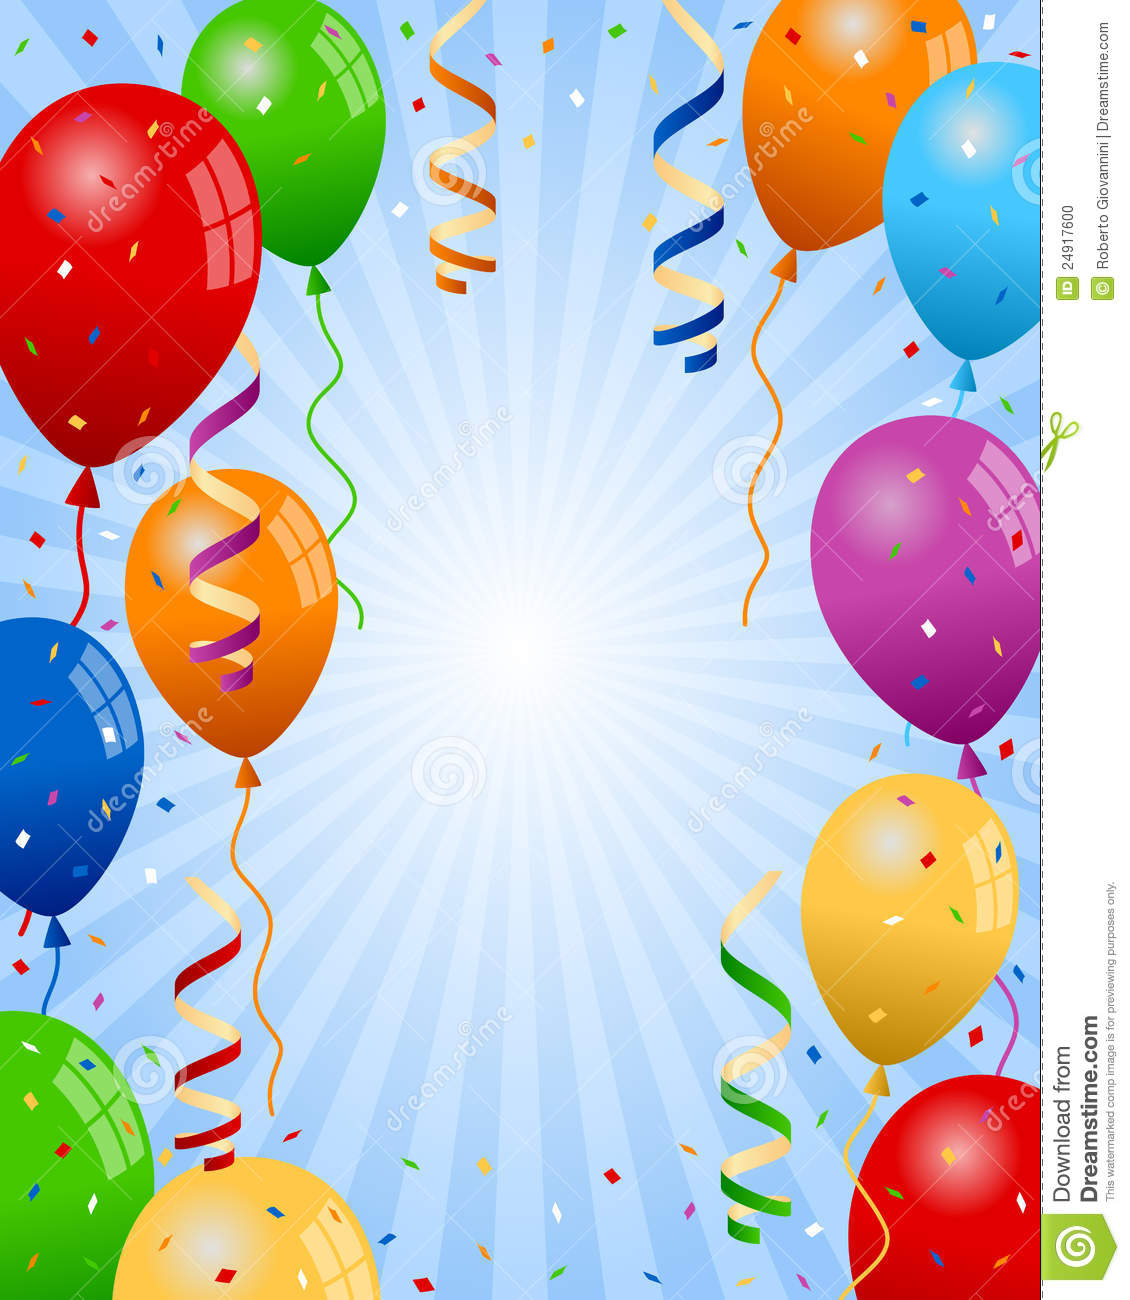 Party Balloons Boy Background Stock Photo - Image: 24917600